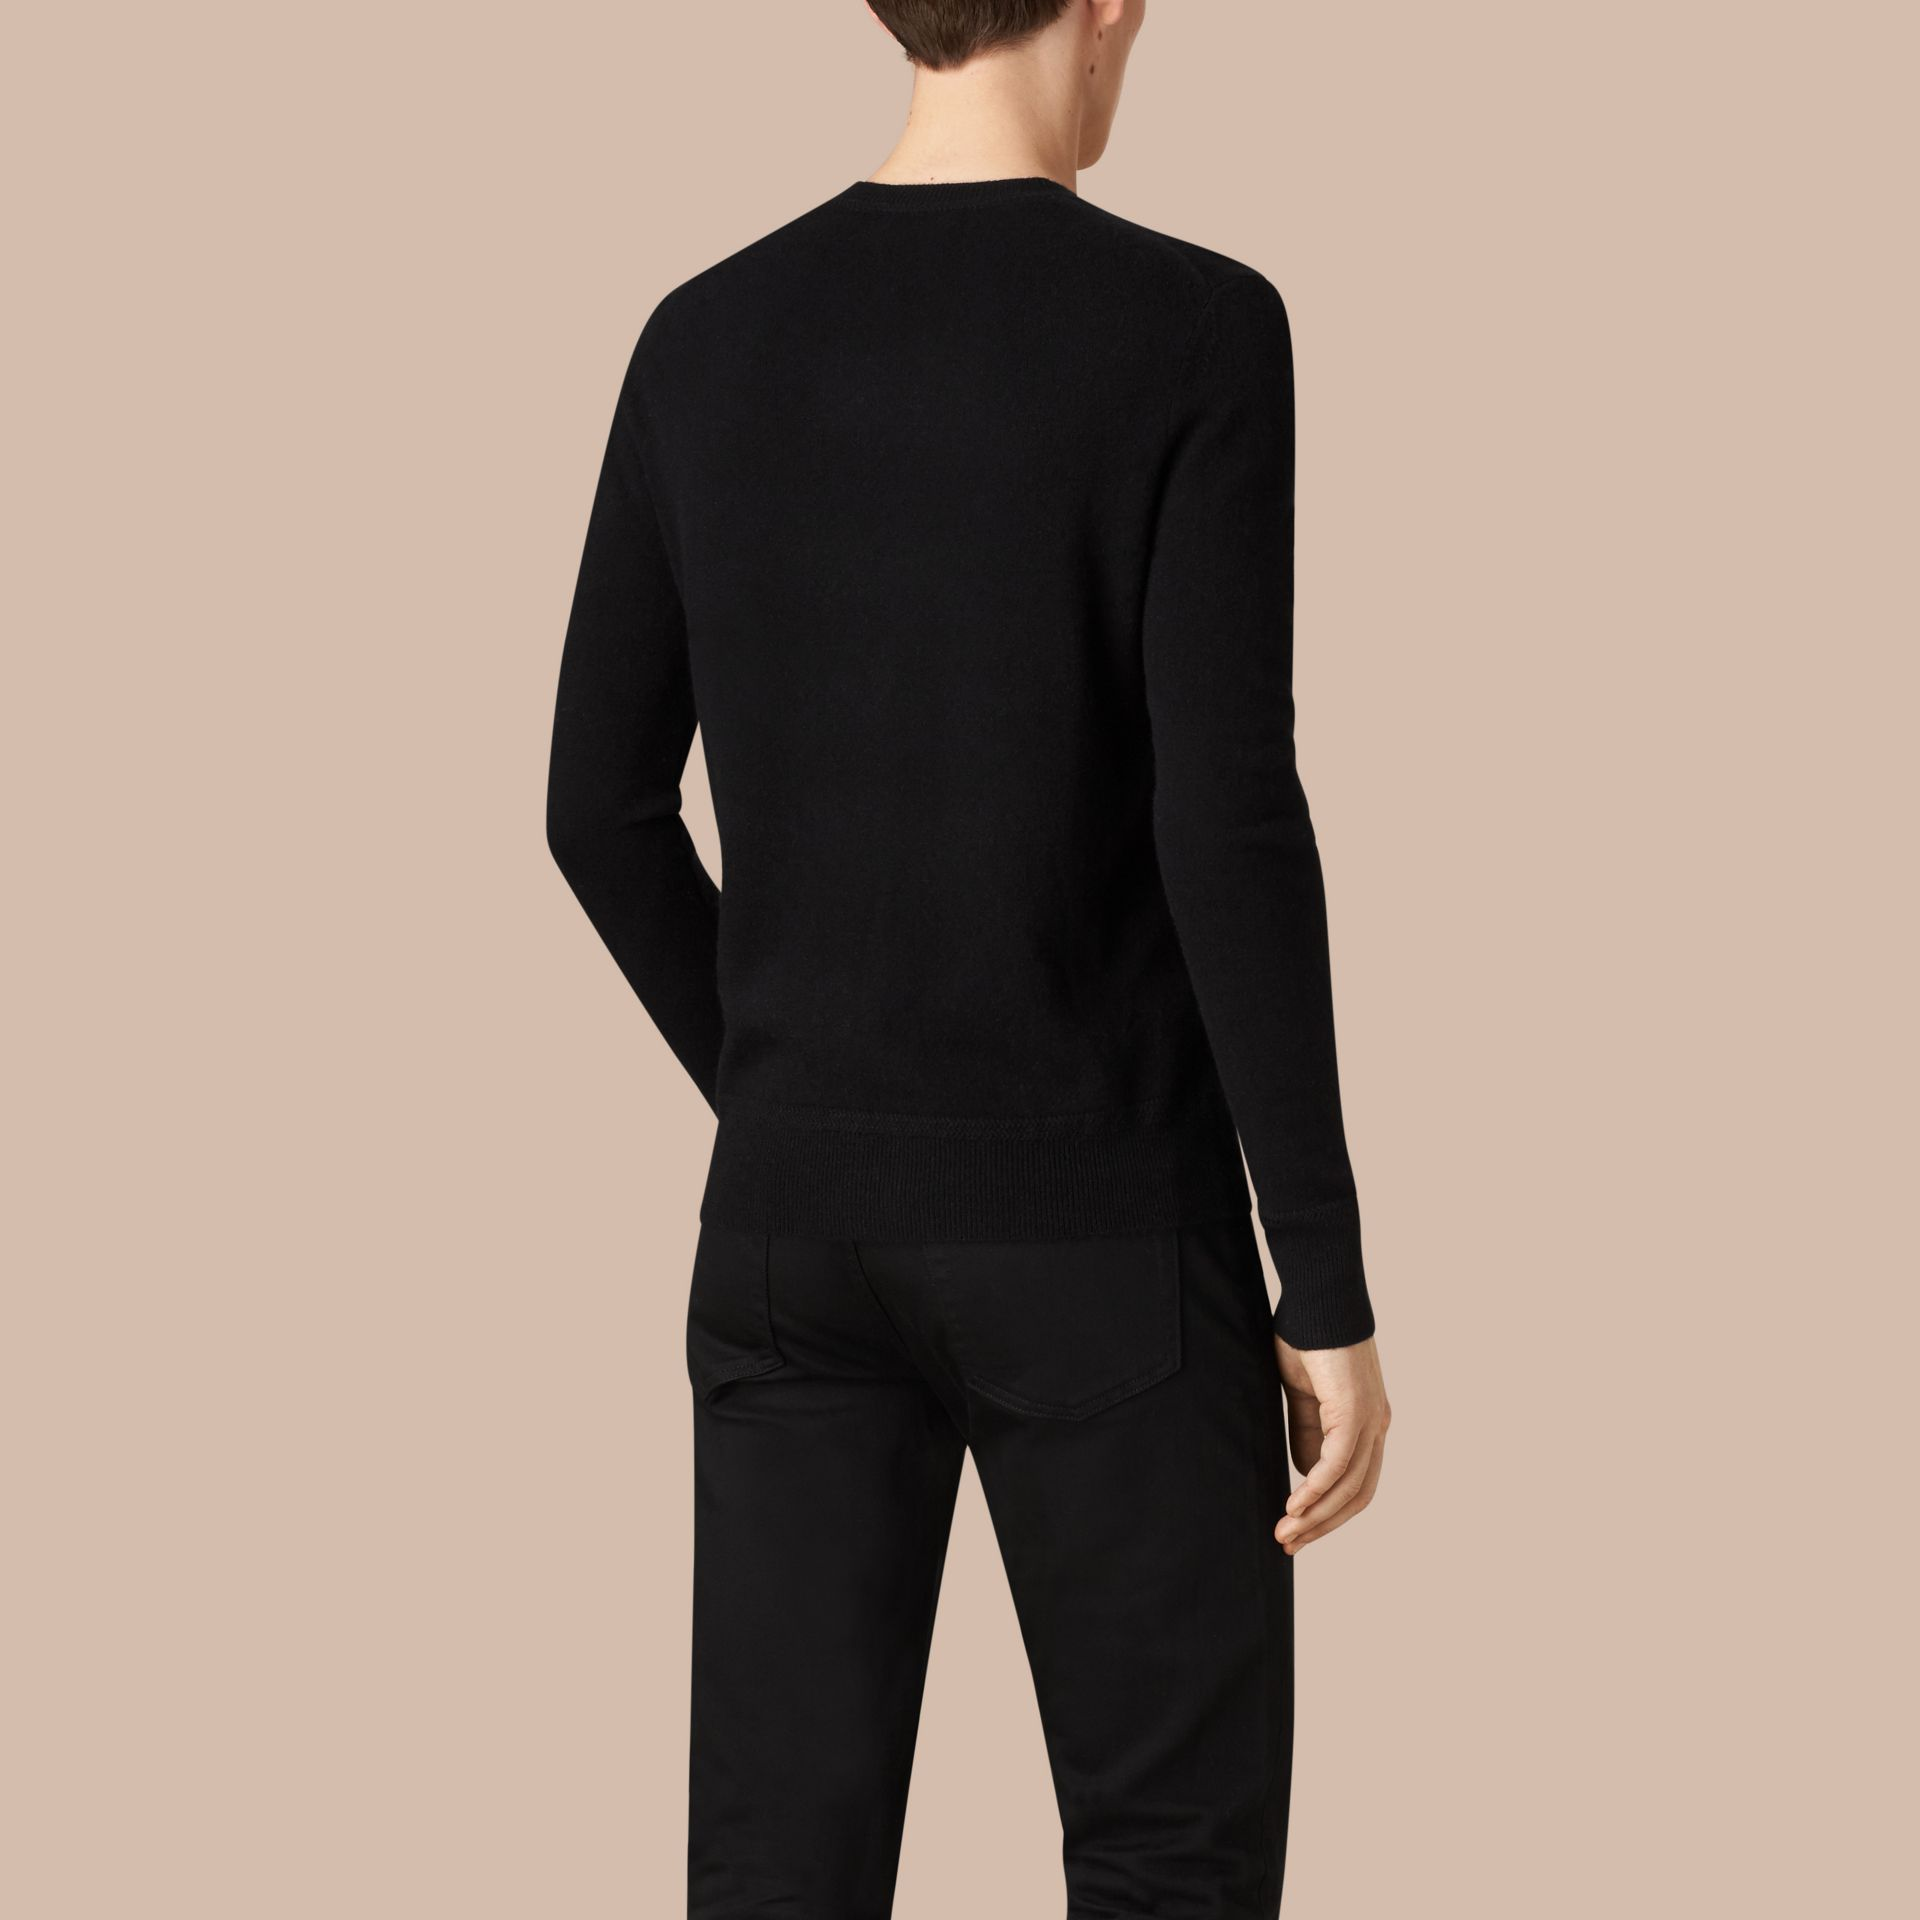 Black Crew Neck Cashmere Sweater Black - gallery image 4